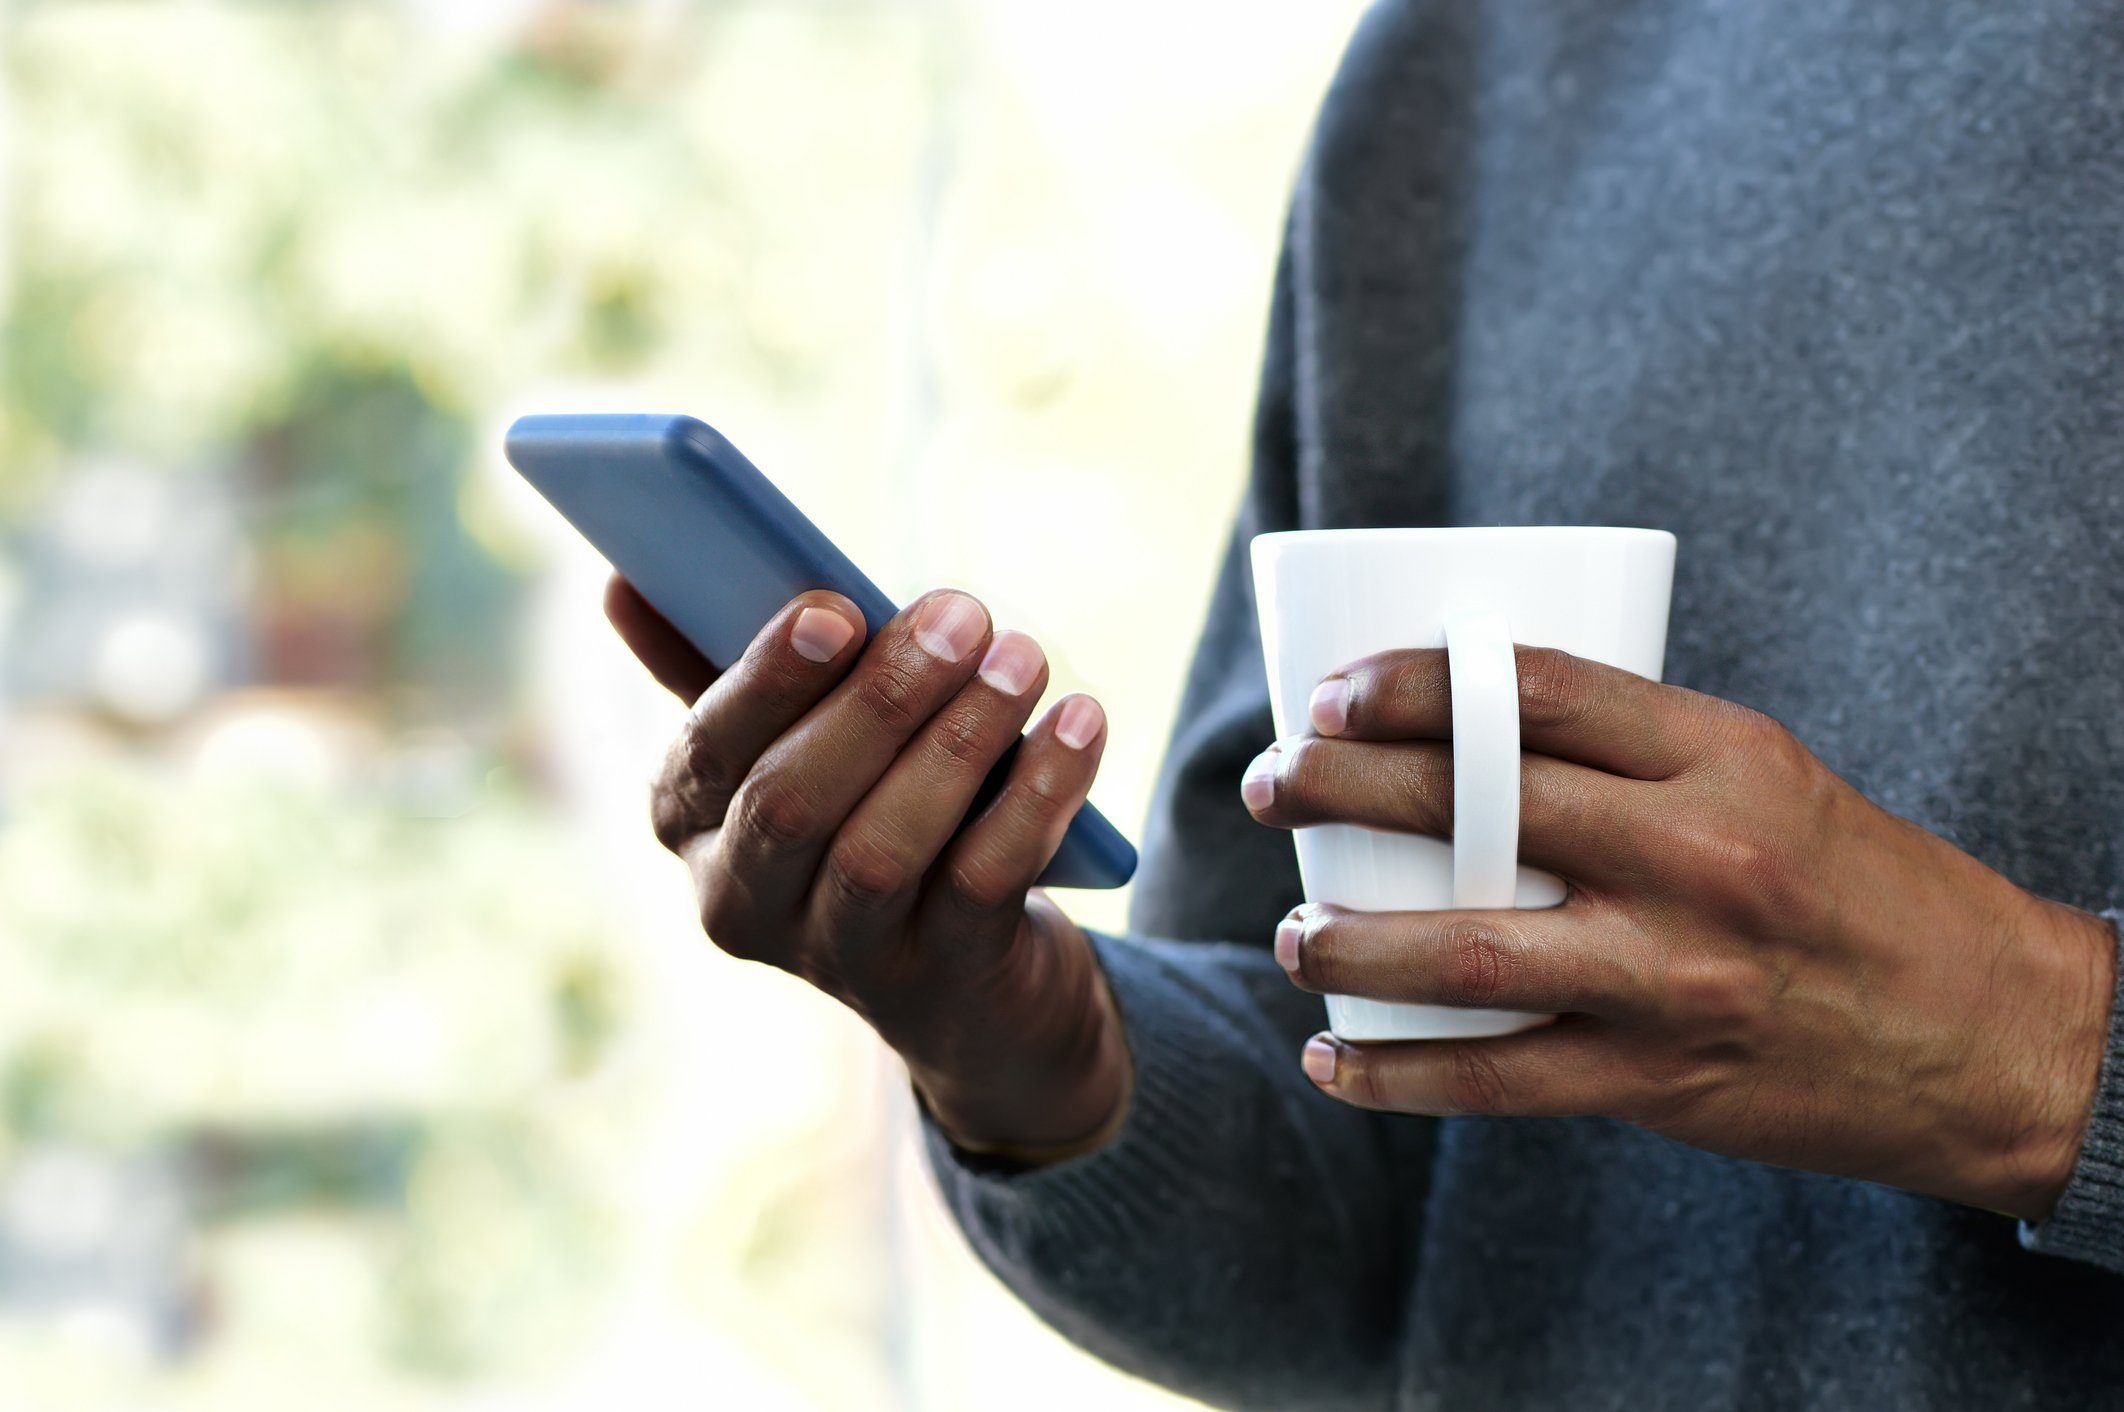 nomophobia | close up of person holding coffee mug and smartphone